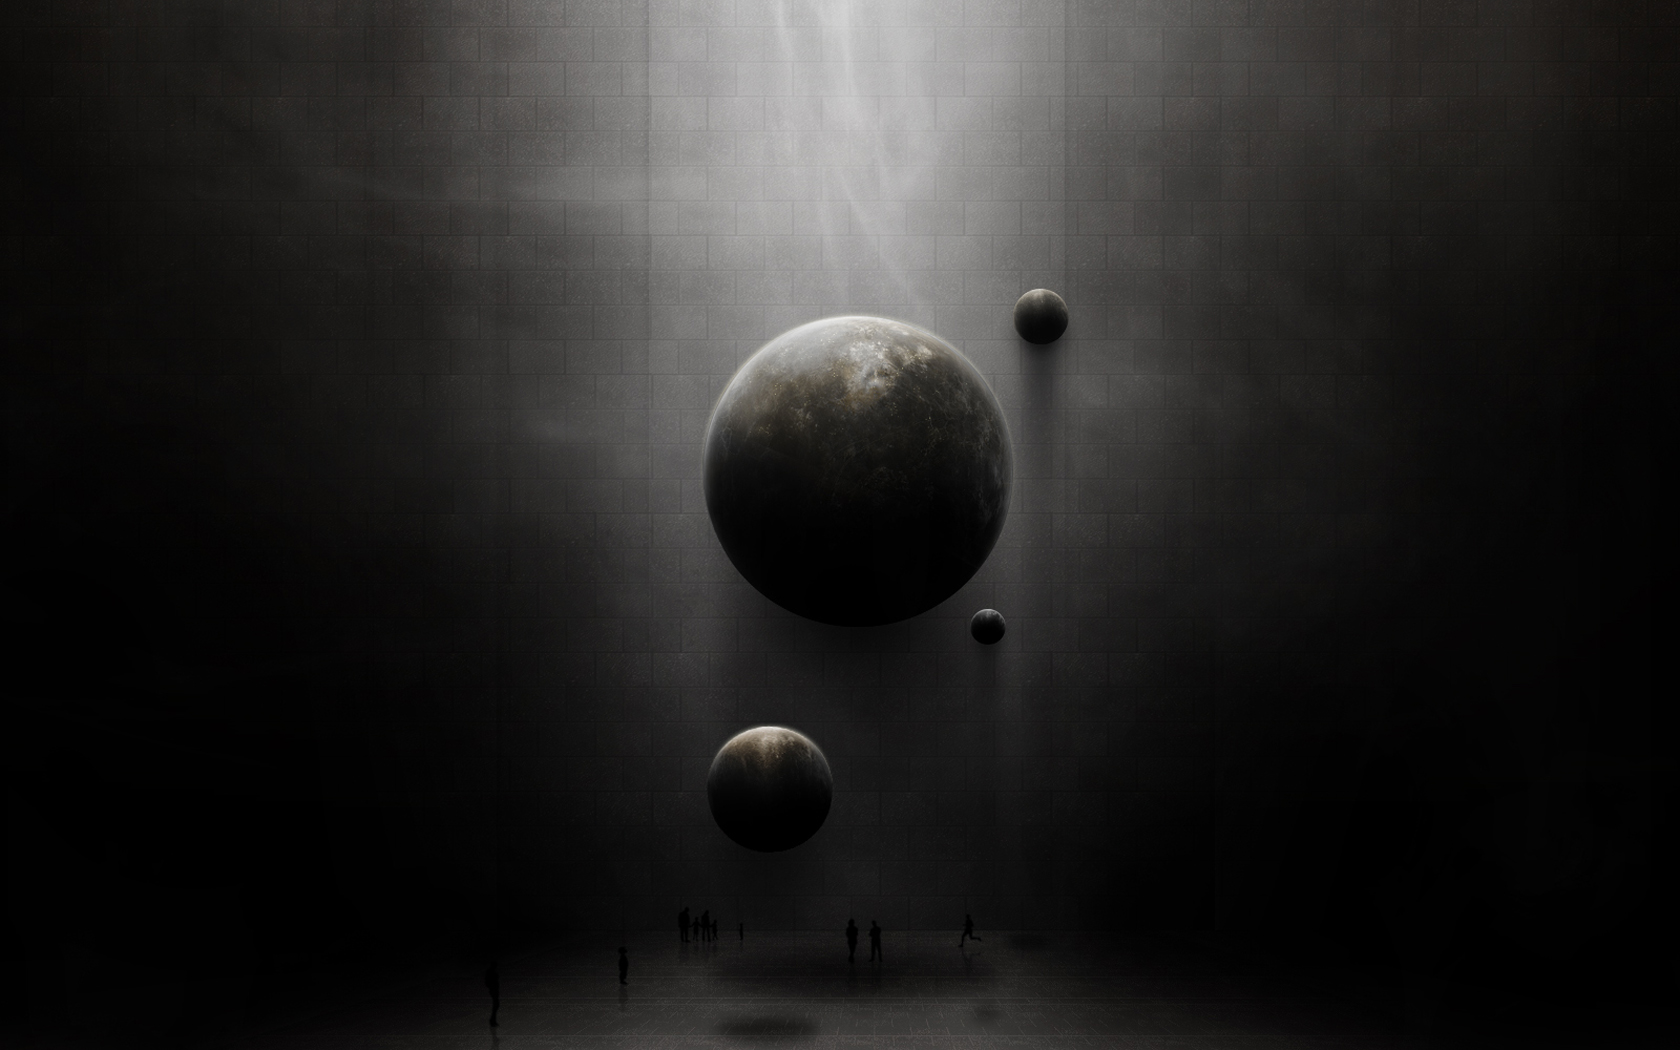 Abstract Dark Planets wallpaper from Dark wallpapers 1680x1050